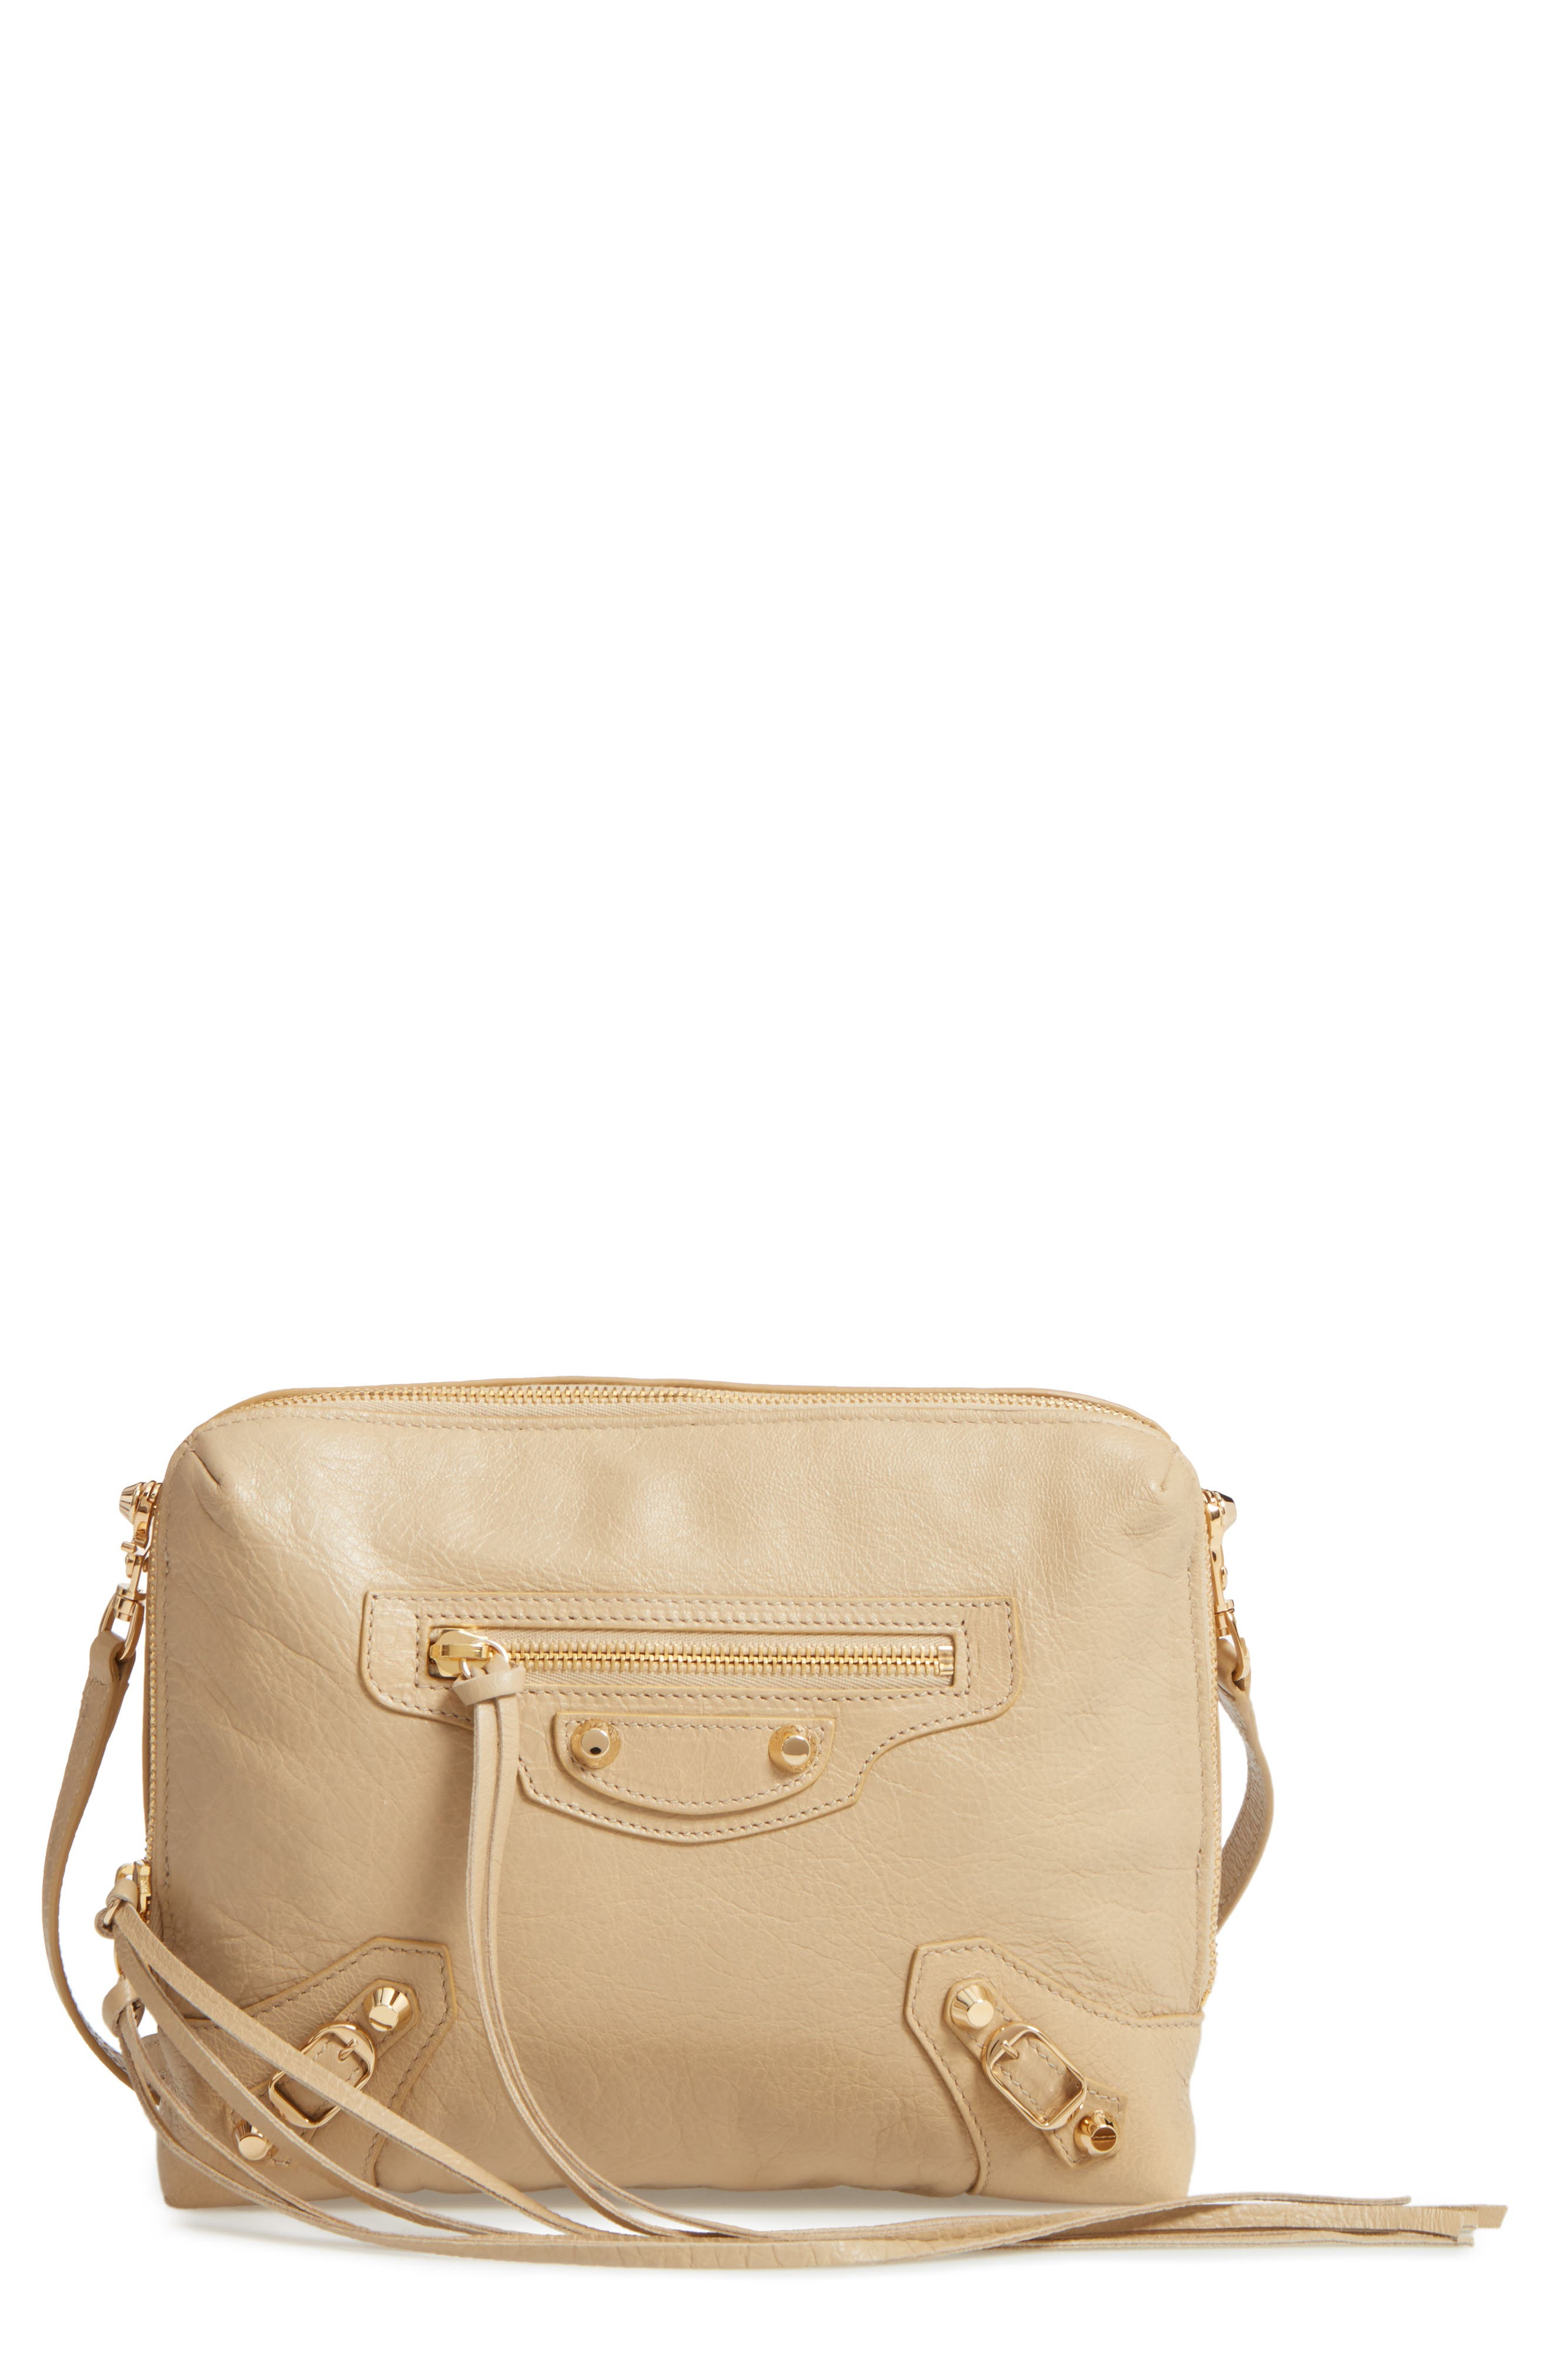 Classic Reporter Leather Camera Bag,                             Main thumbnail 1, color,                             2616 Beige Sable